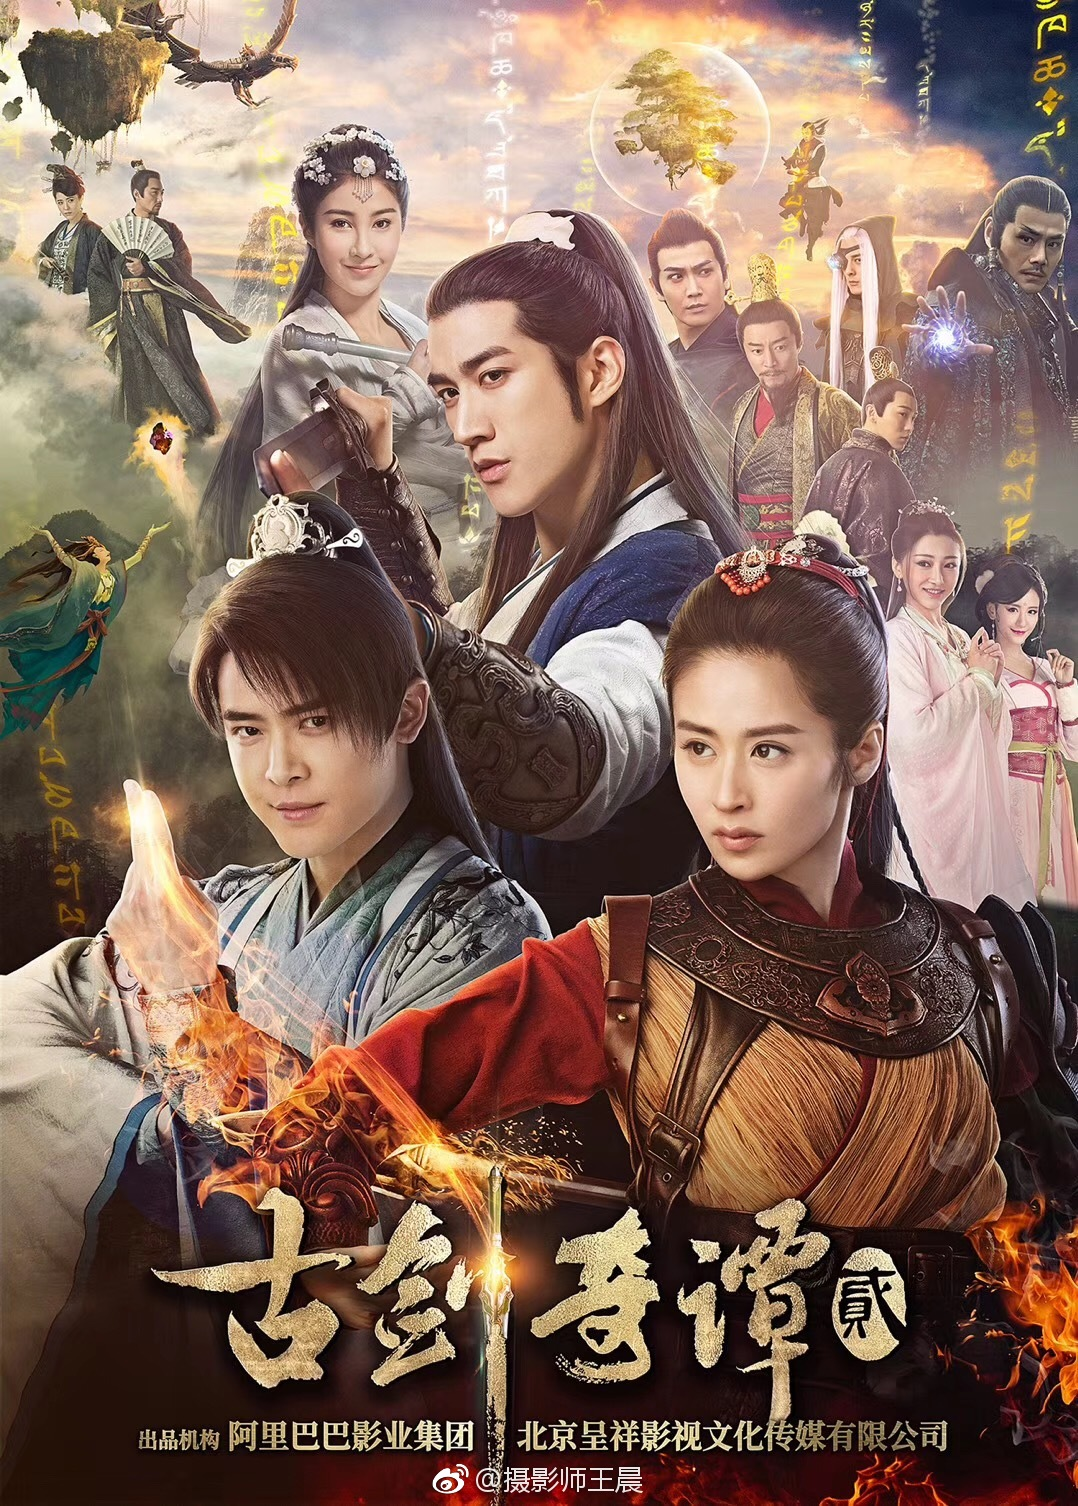 Sword of Legends II [Eng-Sub] 1-48 END   古剑奇谭二   Chinese Series   Chinese Drama